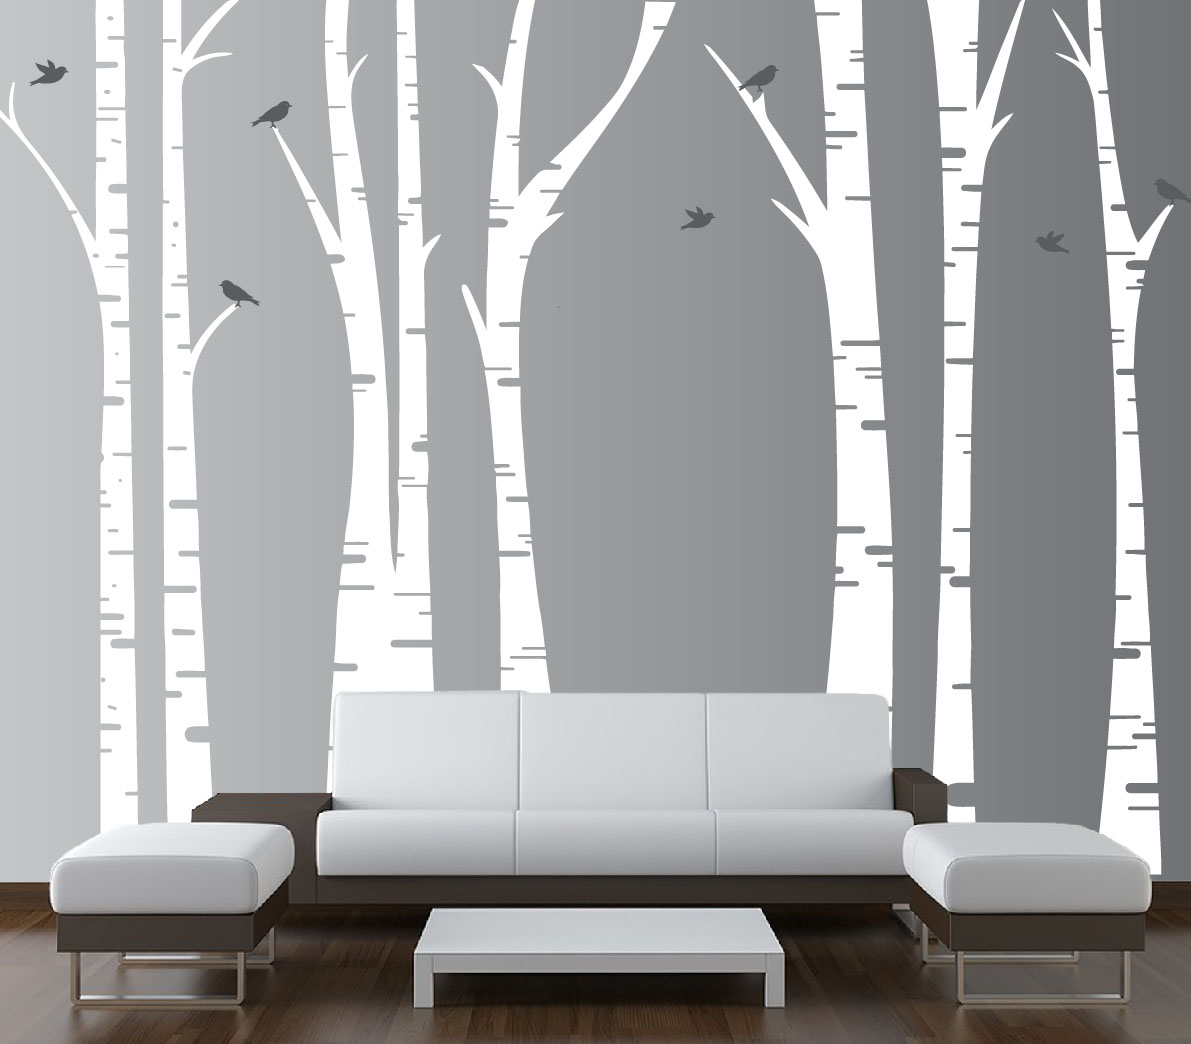 living-room-tree-wall-decals-birds.jpg